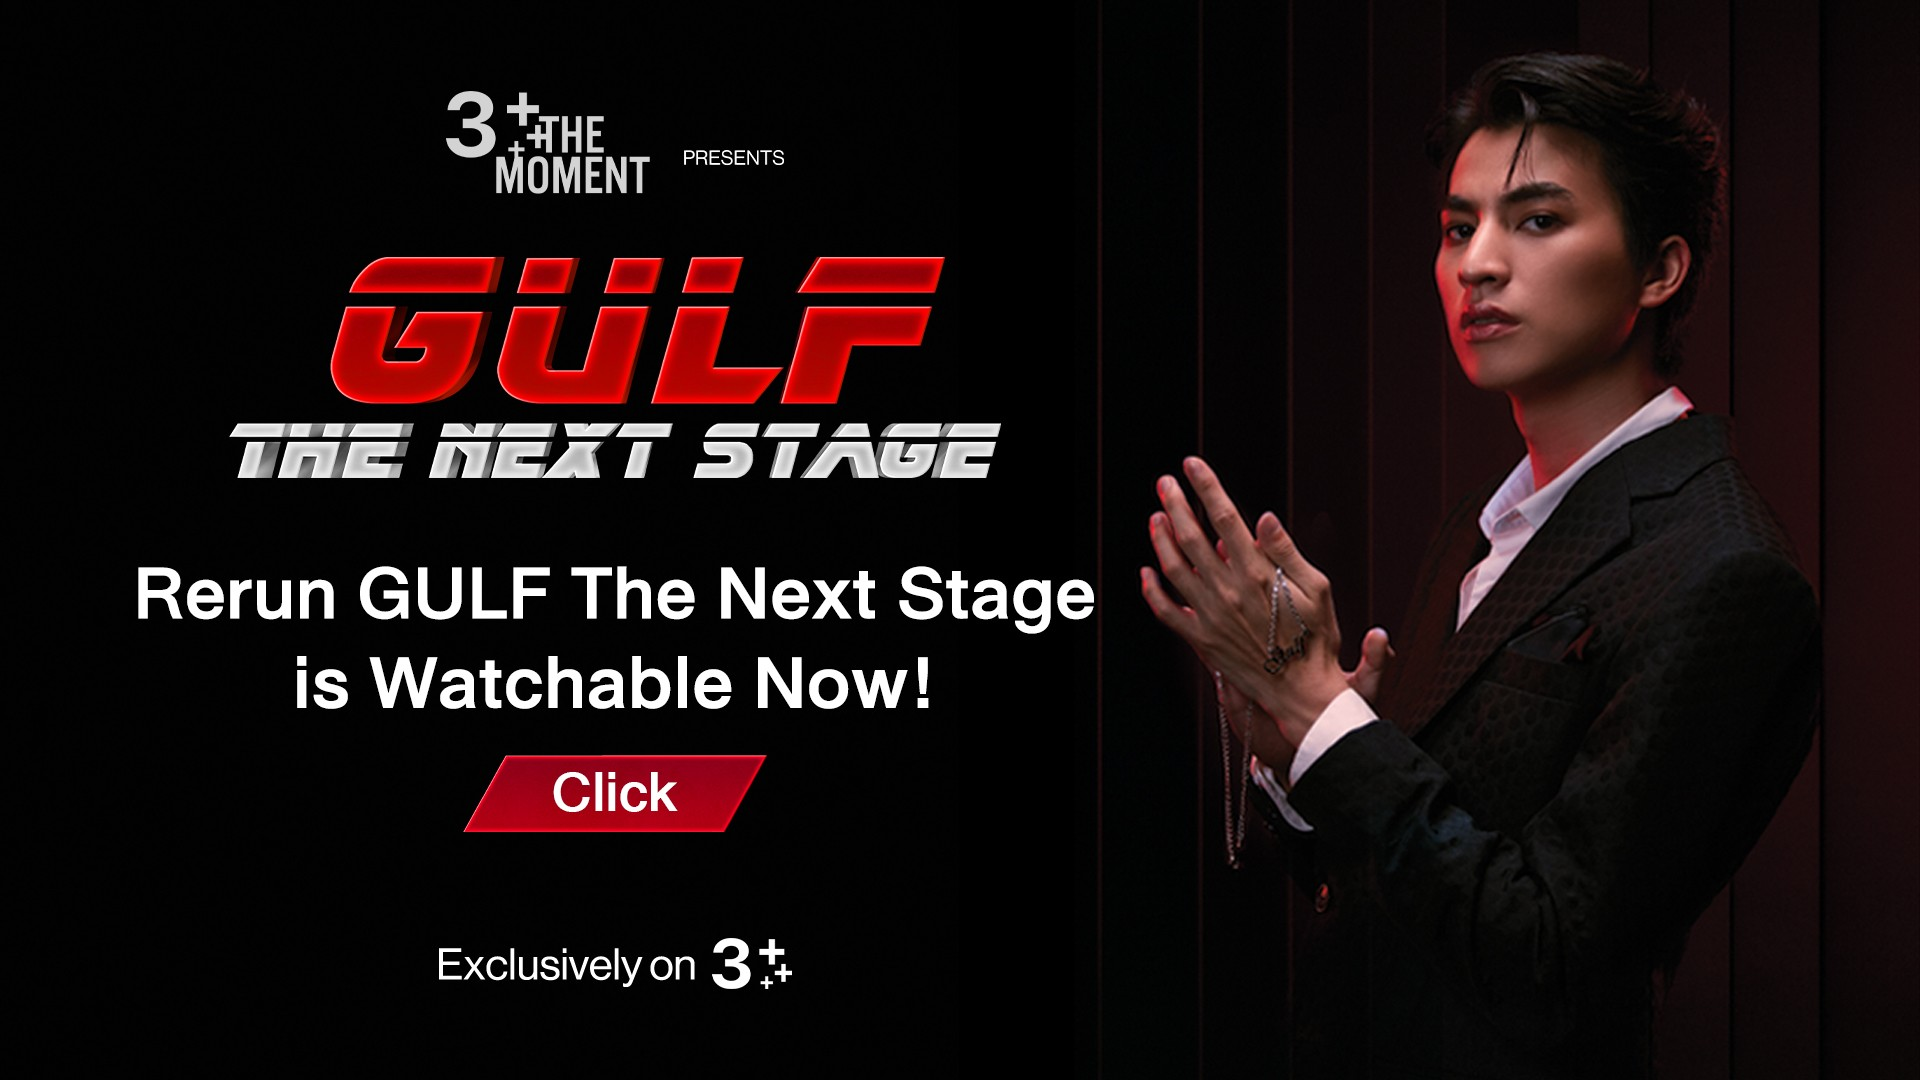 CH3Plus The Moment: Rerun Gulf The Next Stage